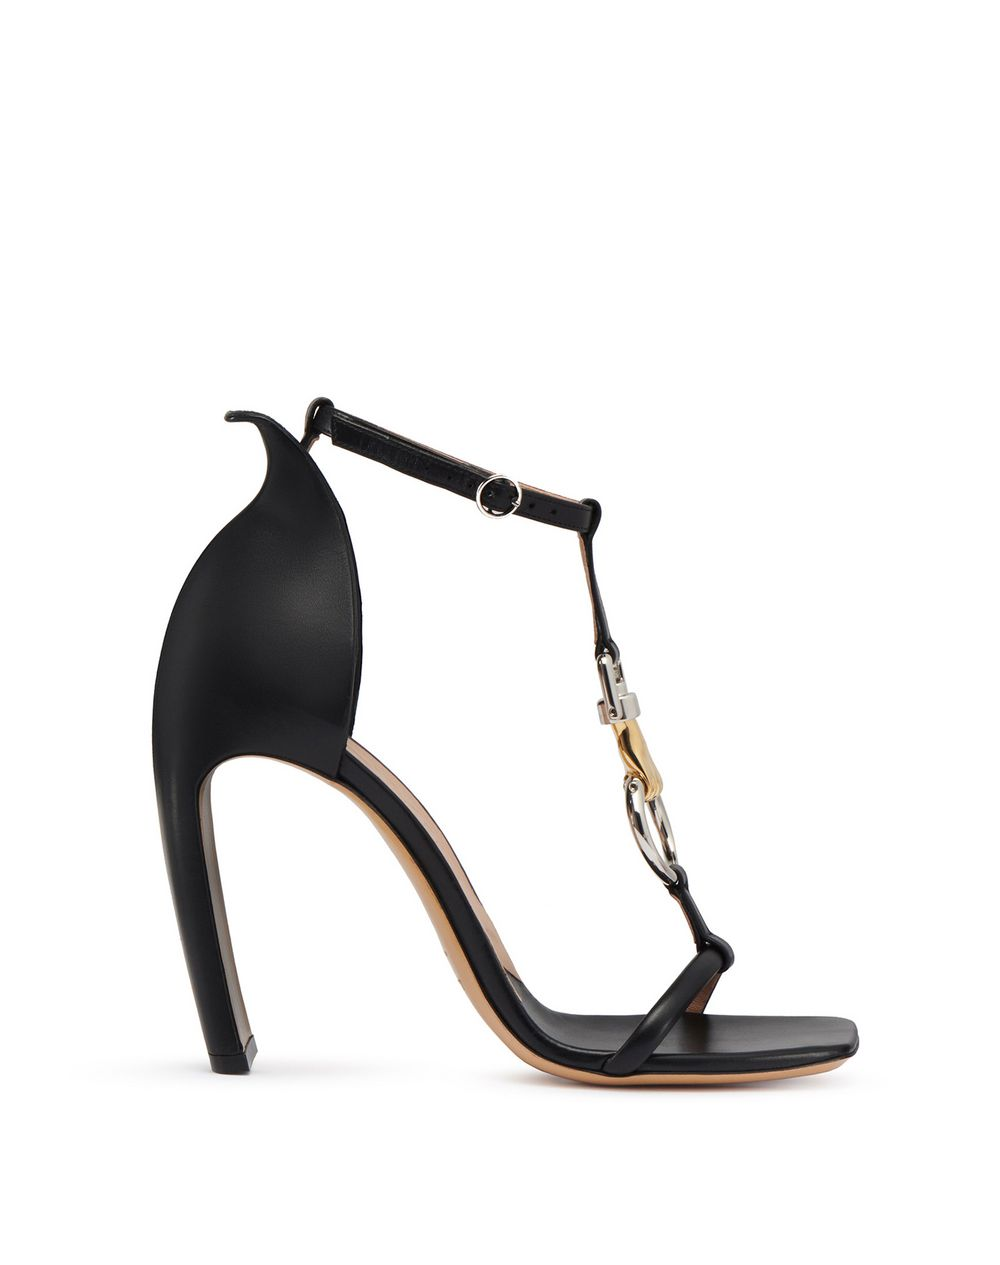 SANDAL WITH JEWELED ANKLE STRAP - Lanvin